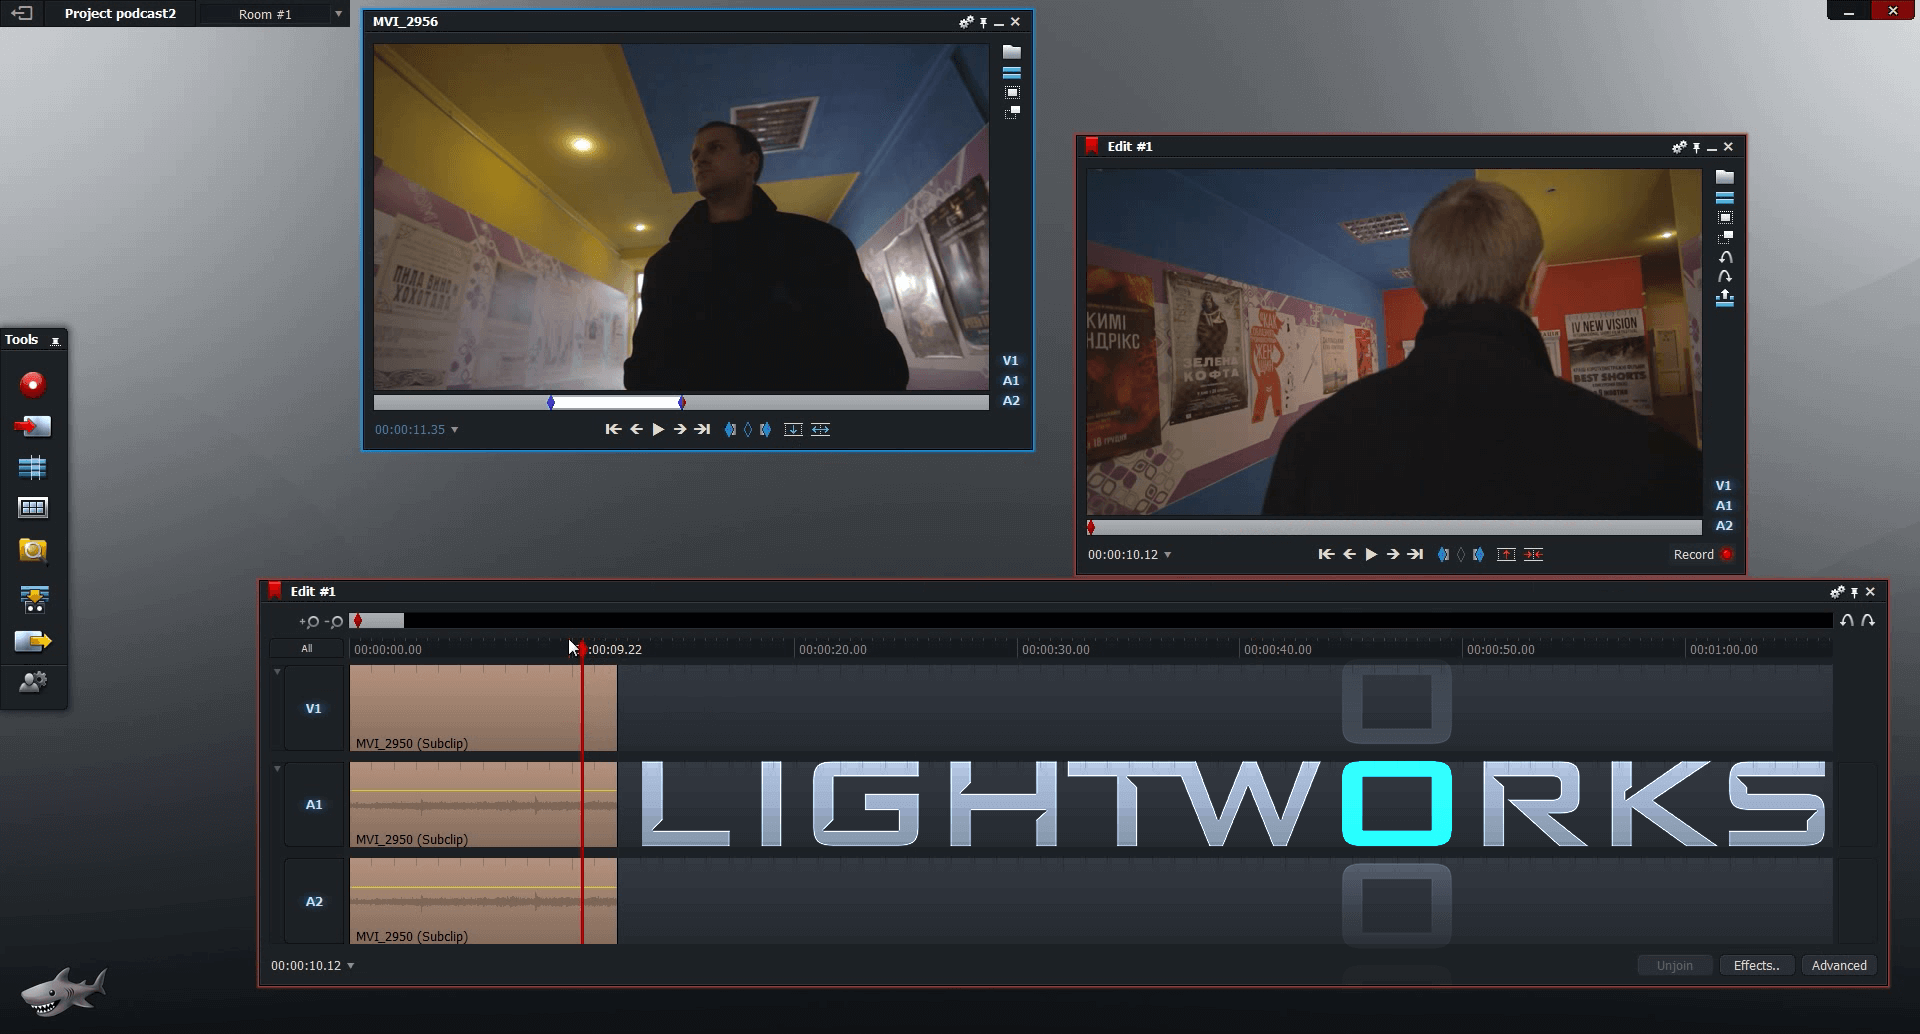 lightworks v12 tutorial review r - Поберайло